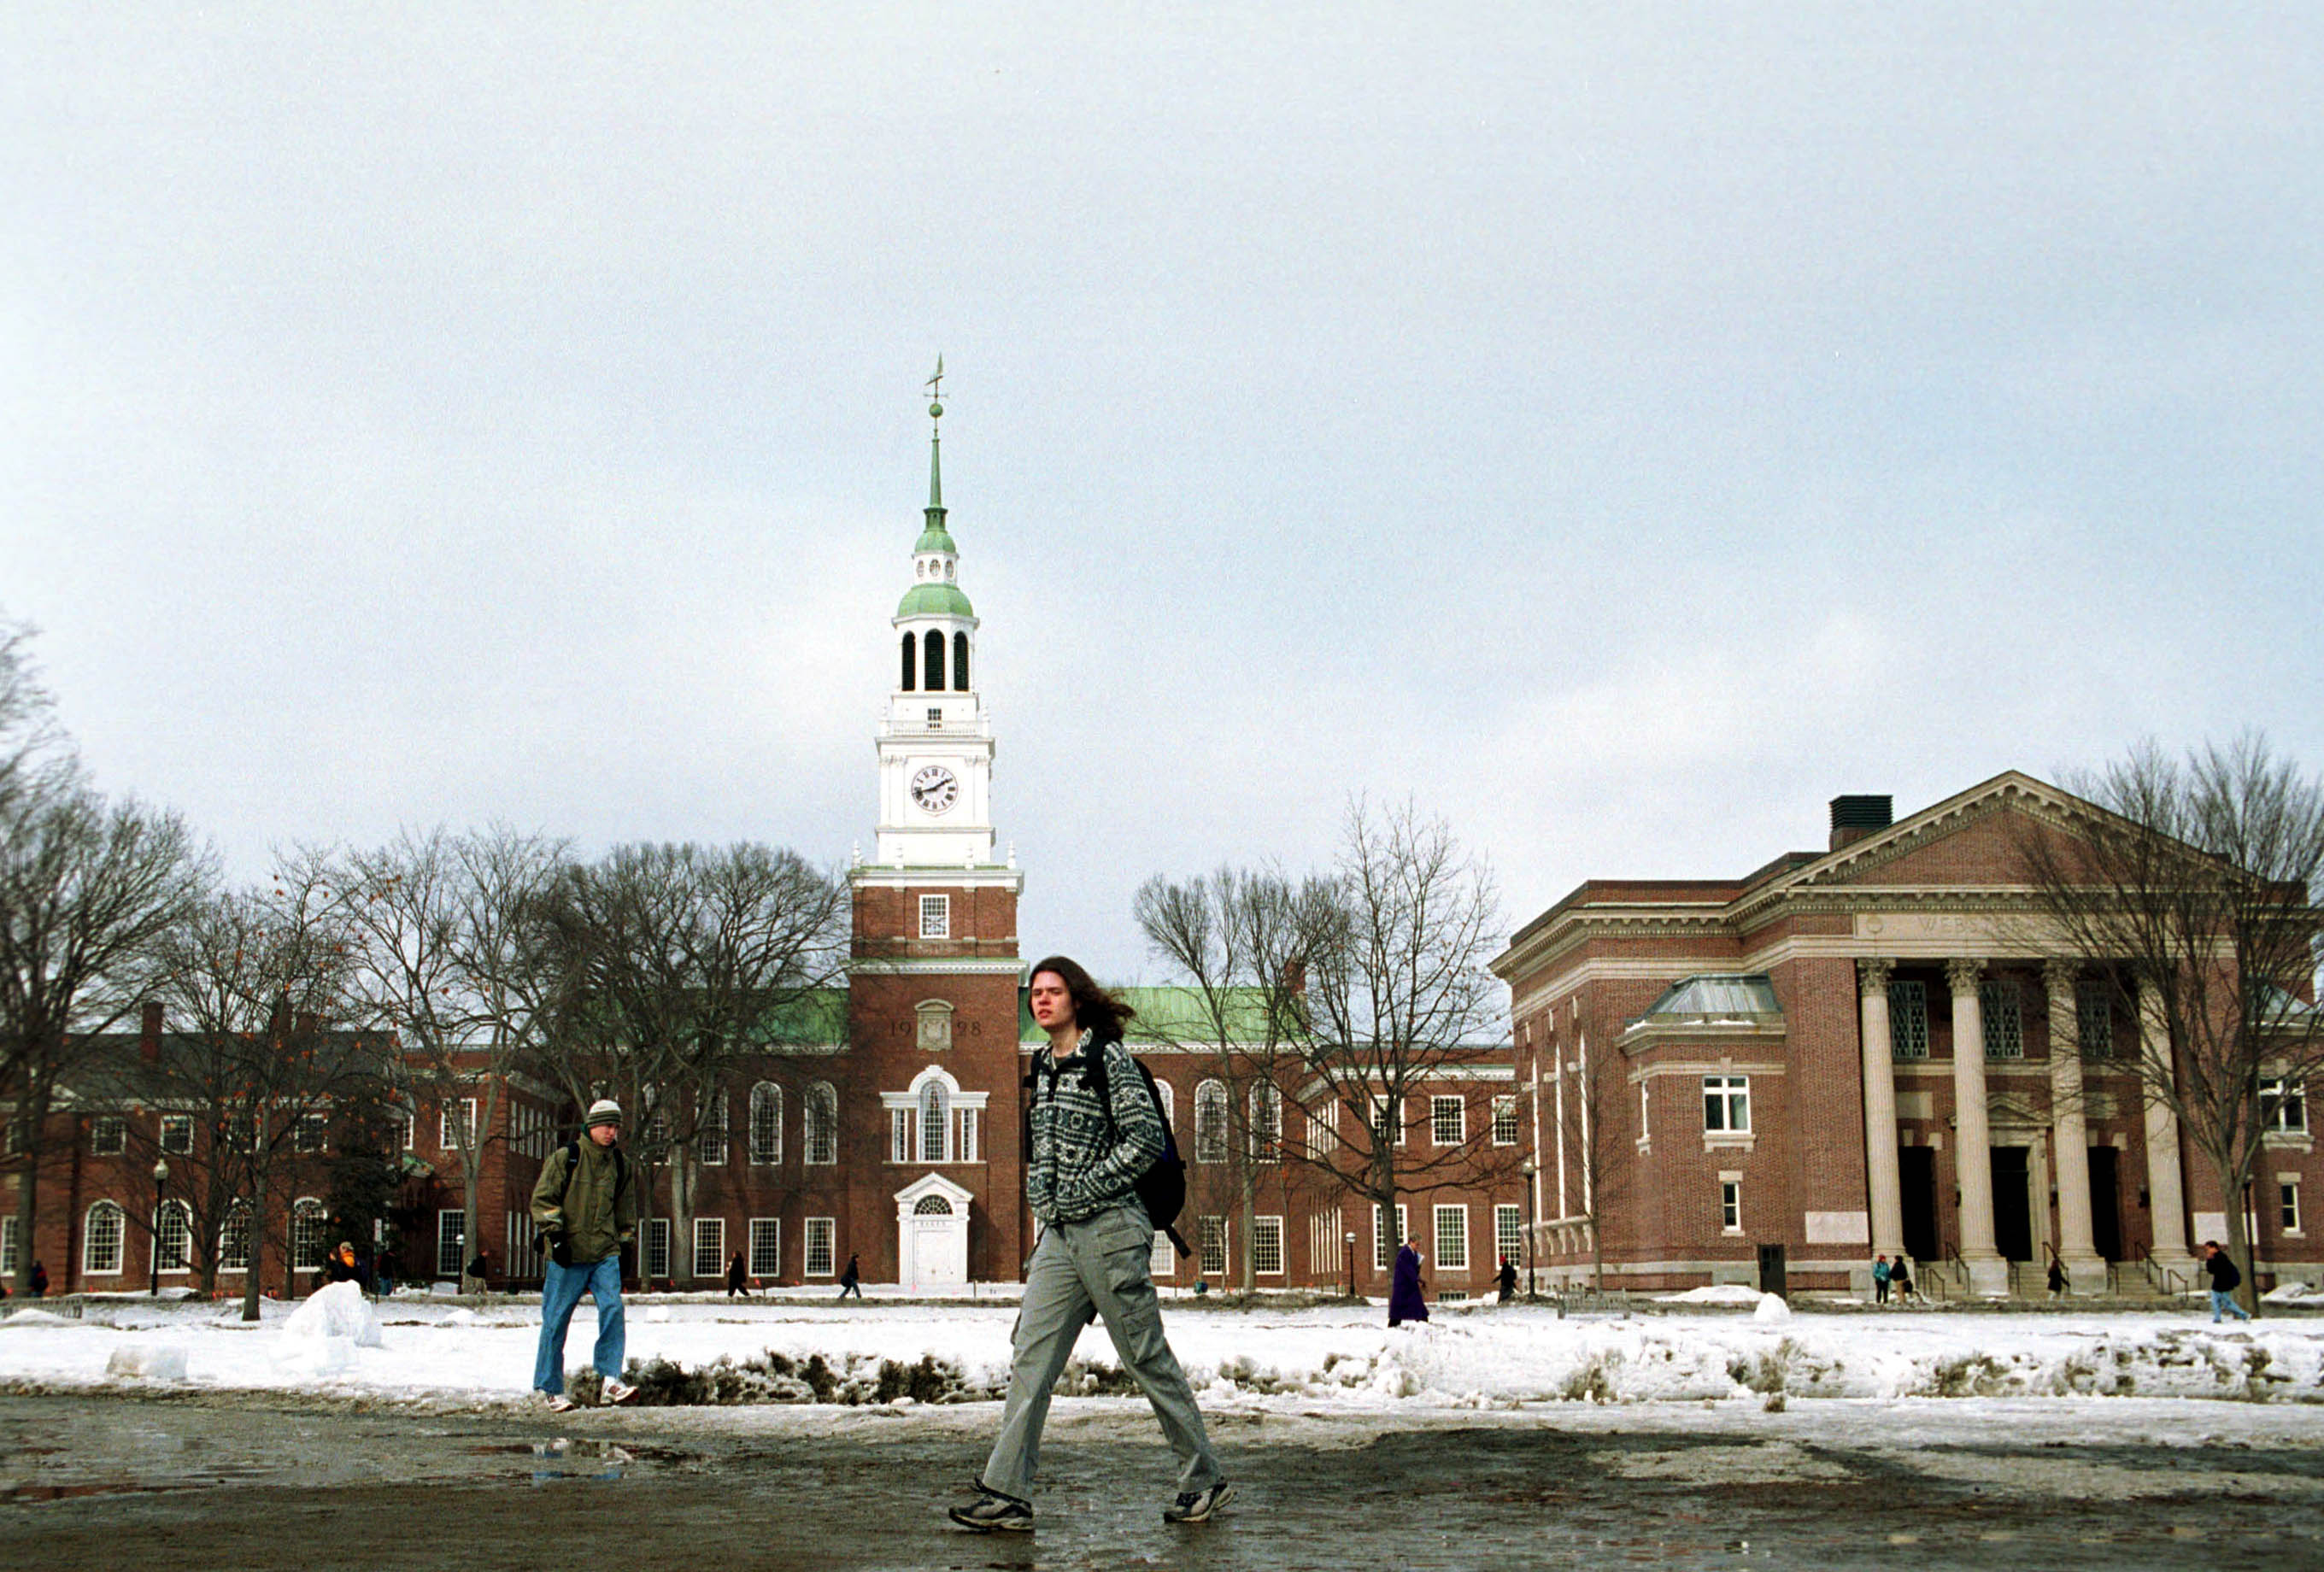 Dartmouth College student walks across the main campus February 28, 2001 in Hanover, NH. (Photo by Darren McCollester/Newsmakers)